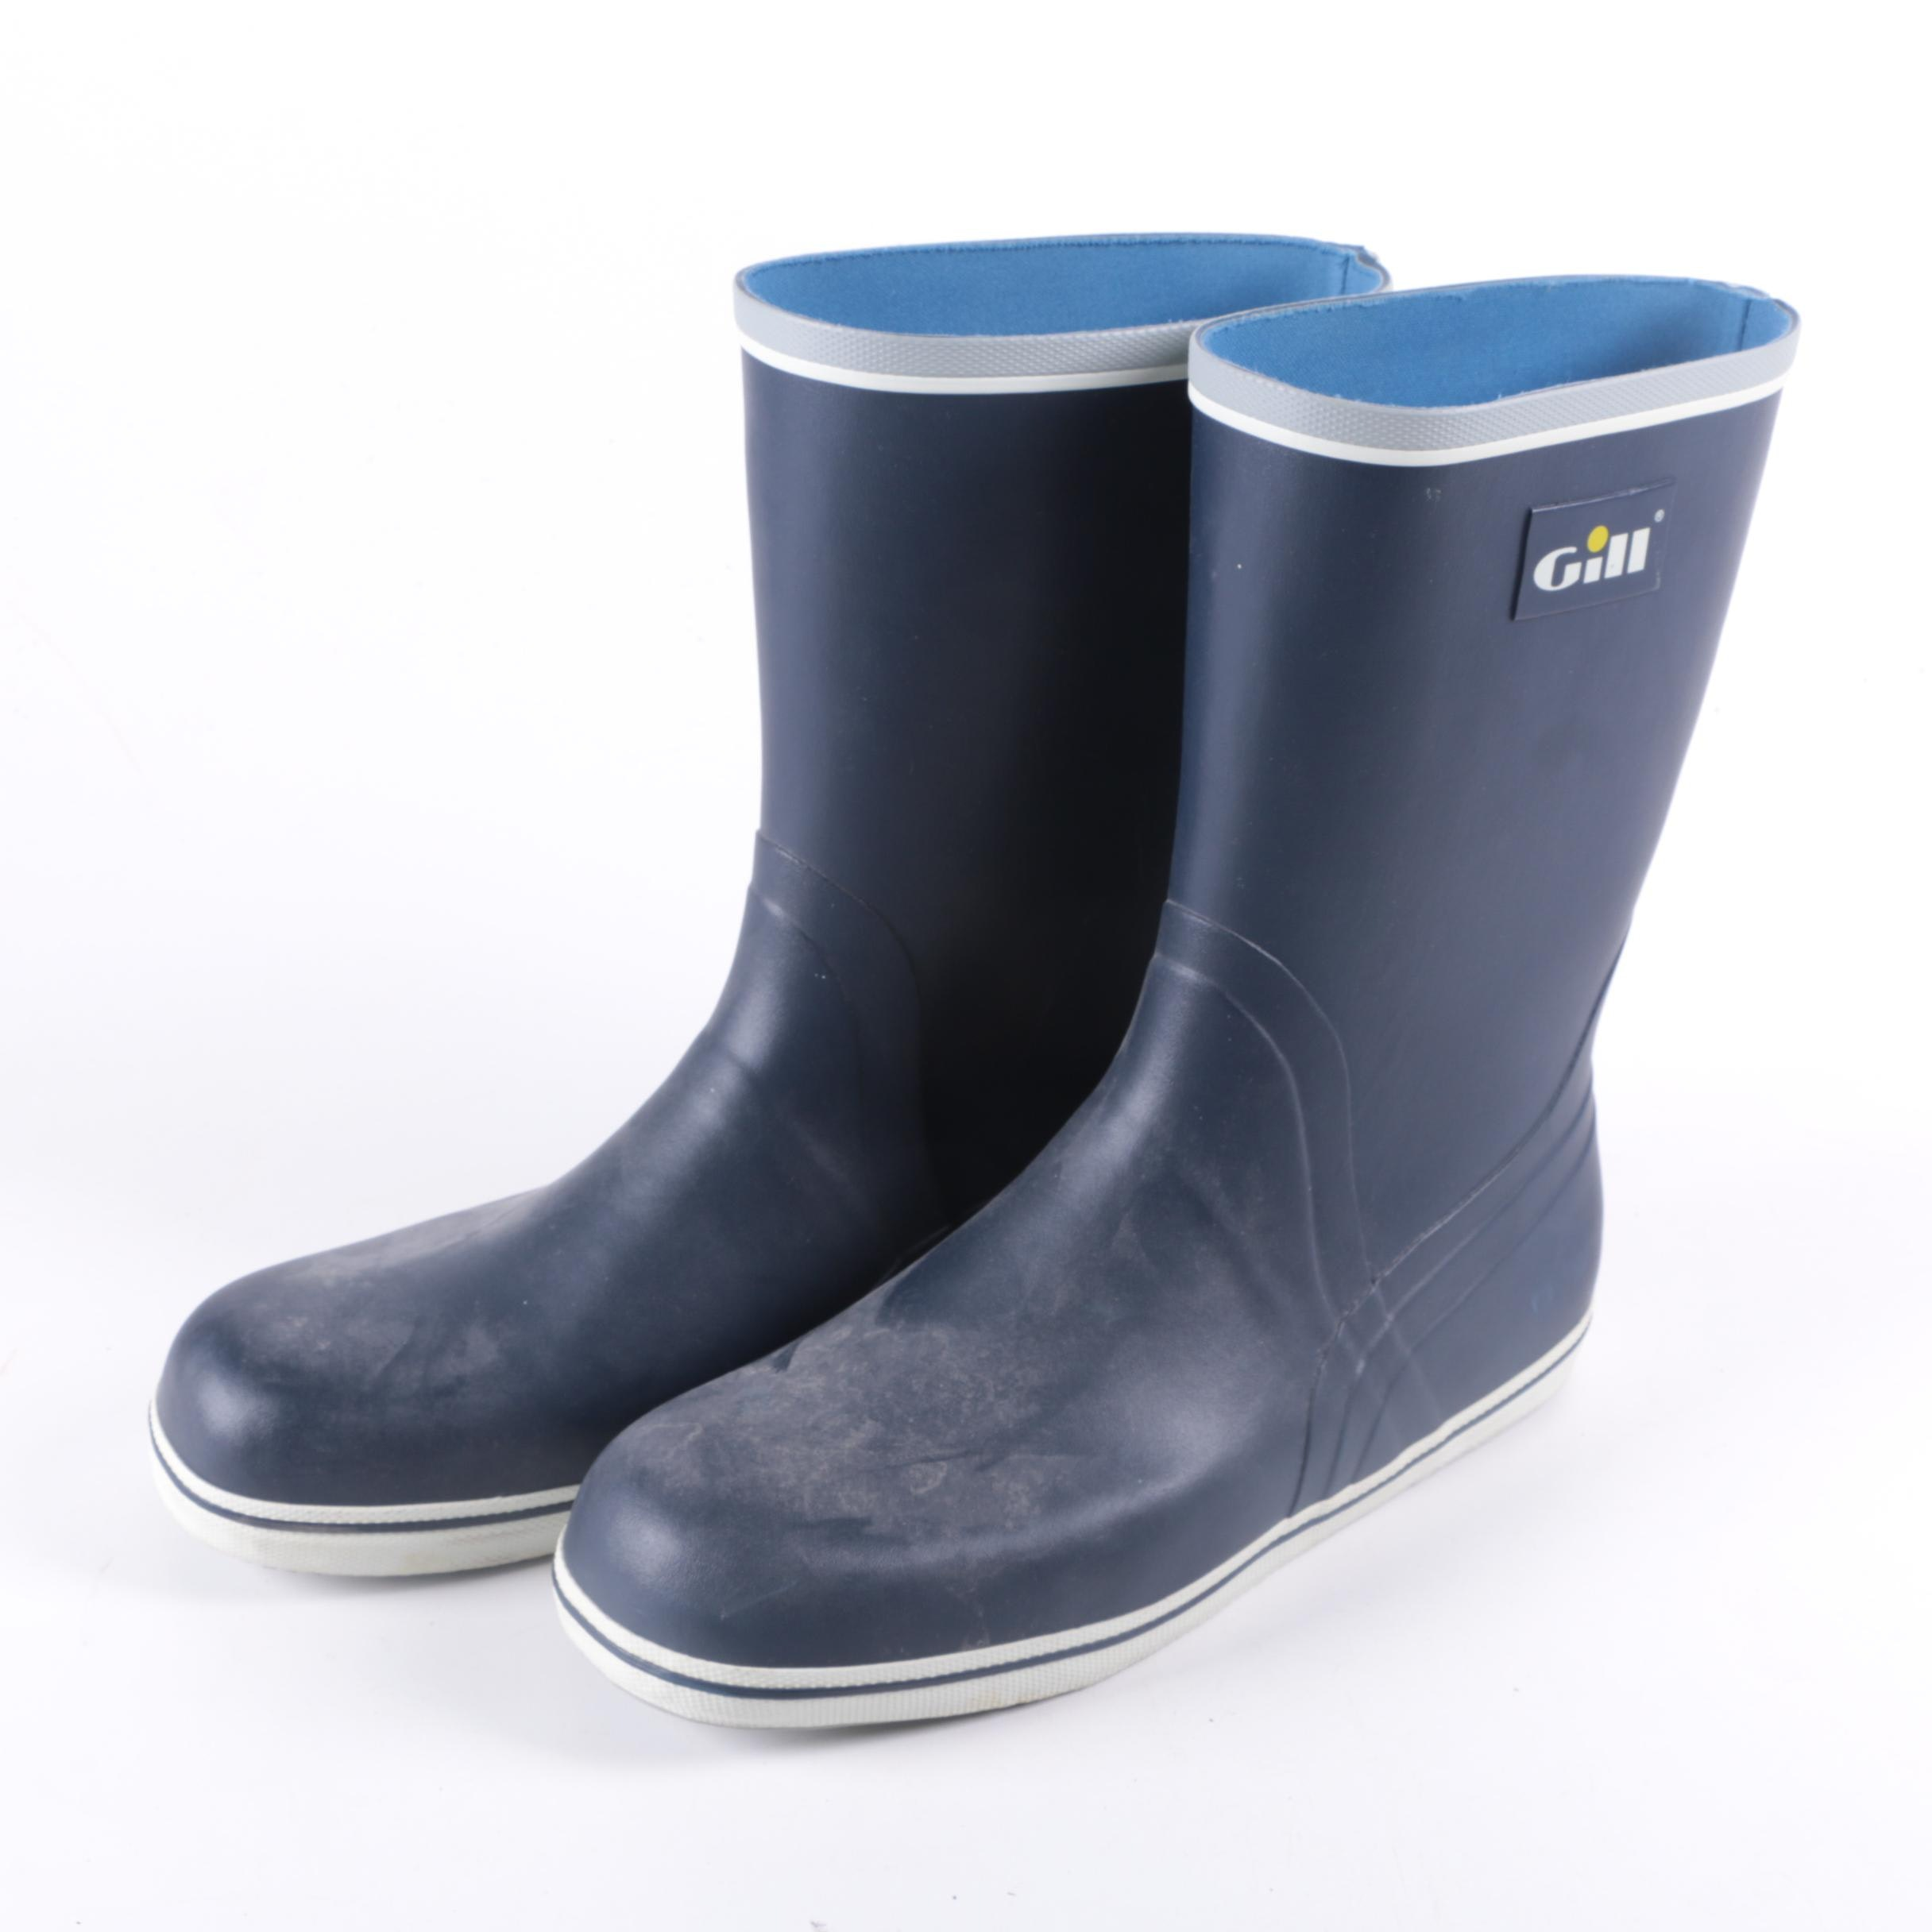 Gill Mens Navy Blue Rain Boots